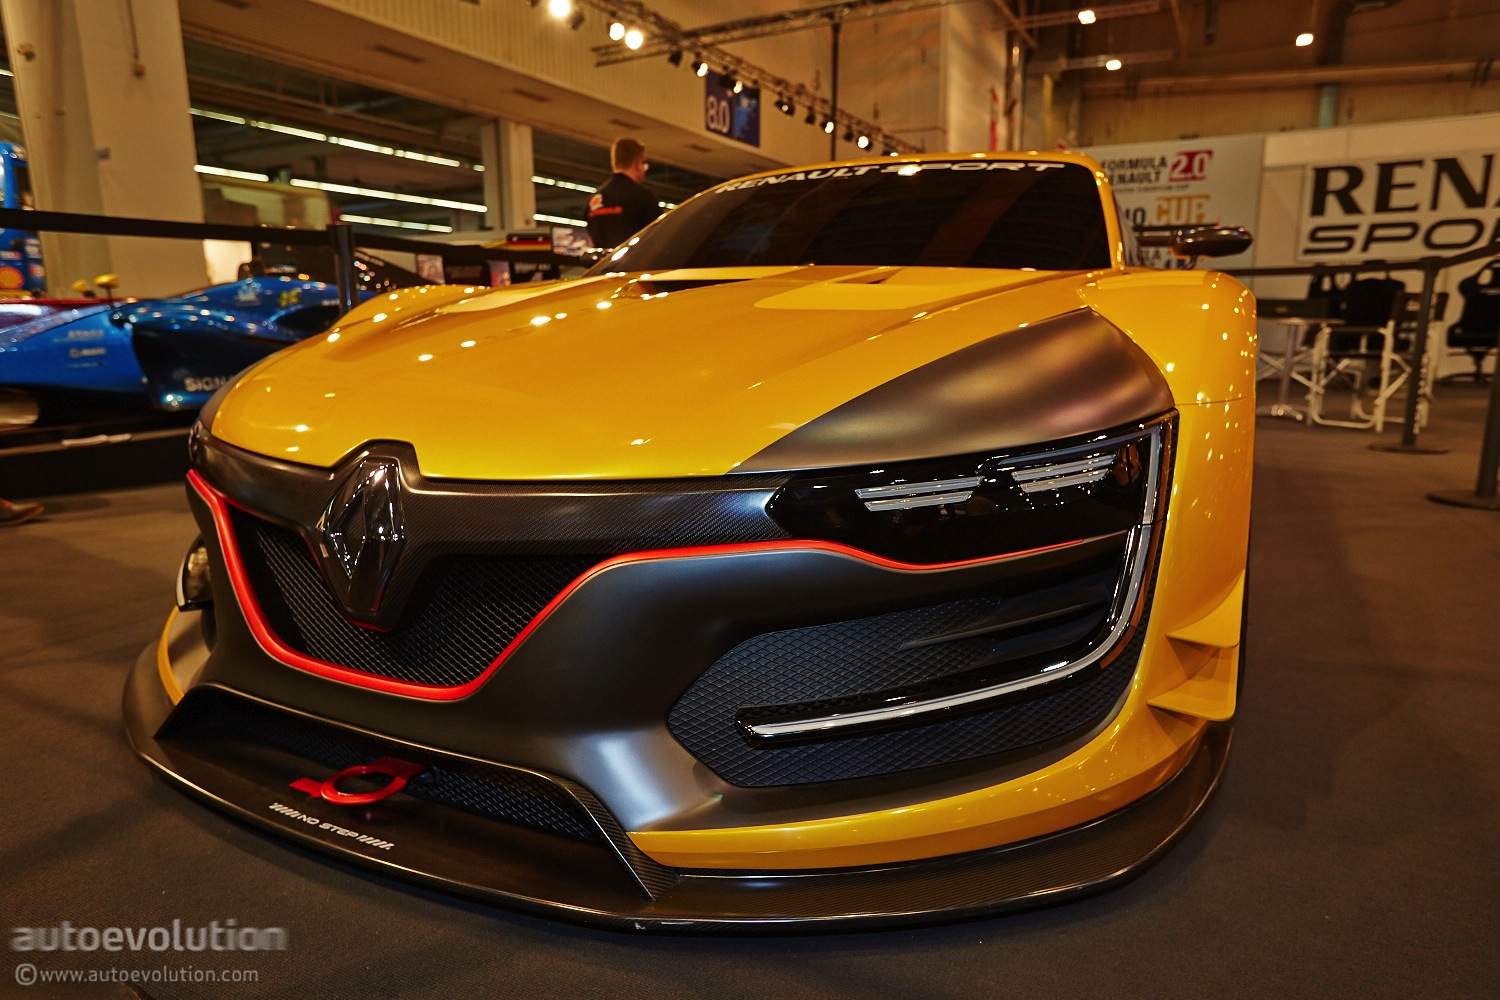 r s 01 race car shows what a 500 hp renault looks like in. Black Bedroom Furniture Sets. Home Design Ideas